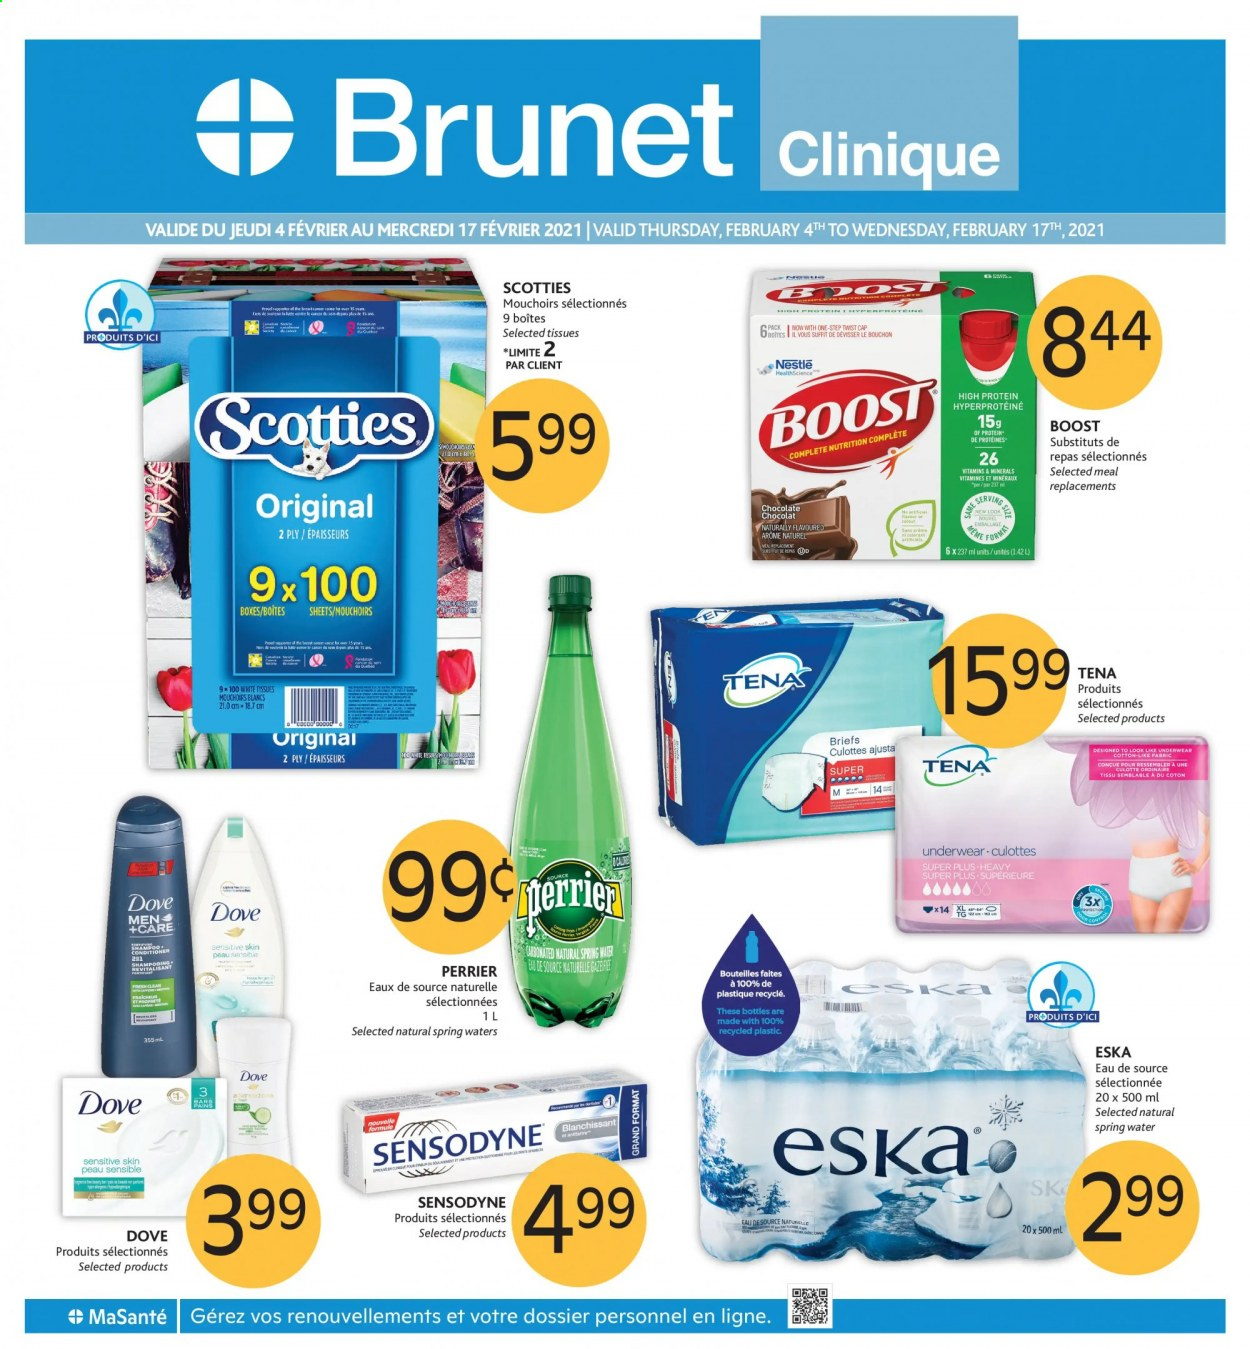 Brunet Clinique Flyer - February 04, 2021 - February 17, 2021 - Sales products - water. Page 1.